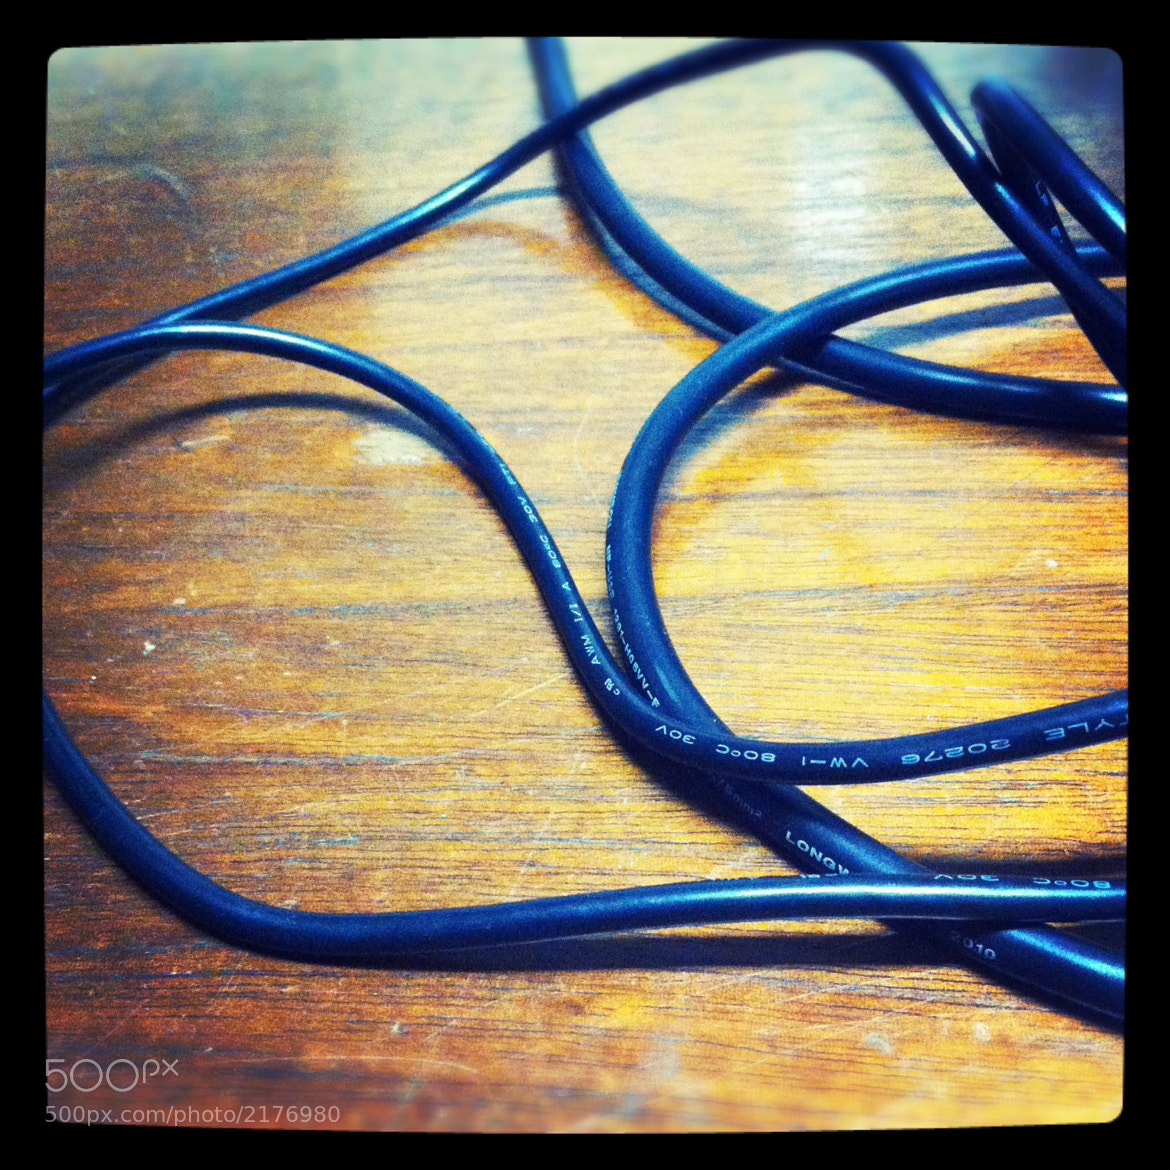 Photograph cable by Evandro Felippe on 500px